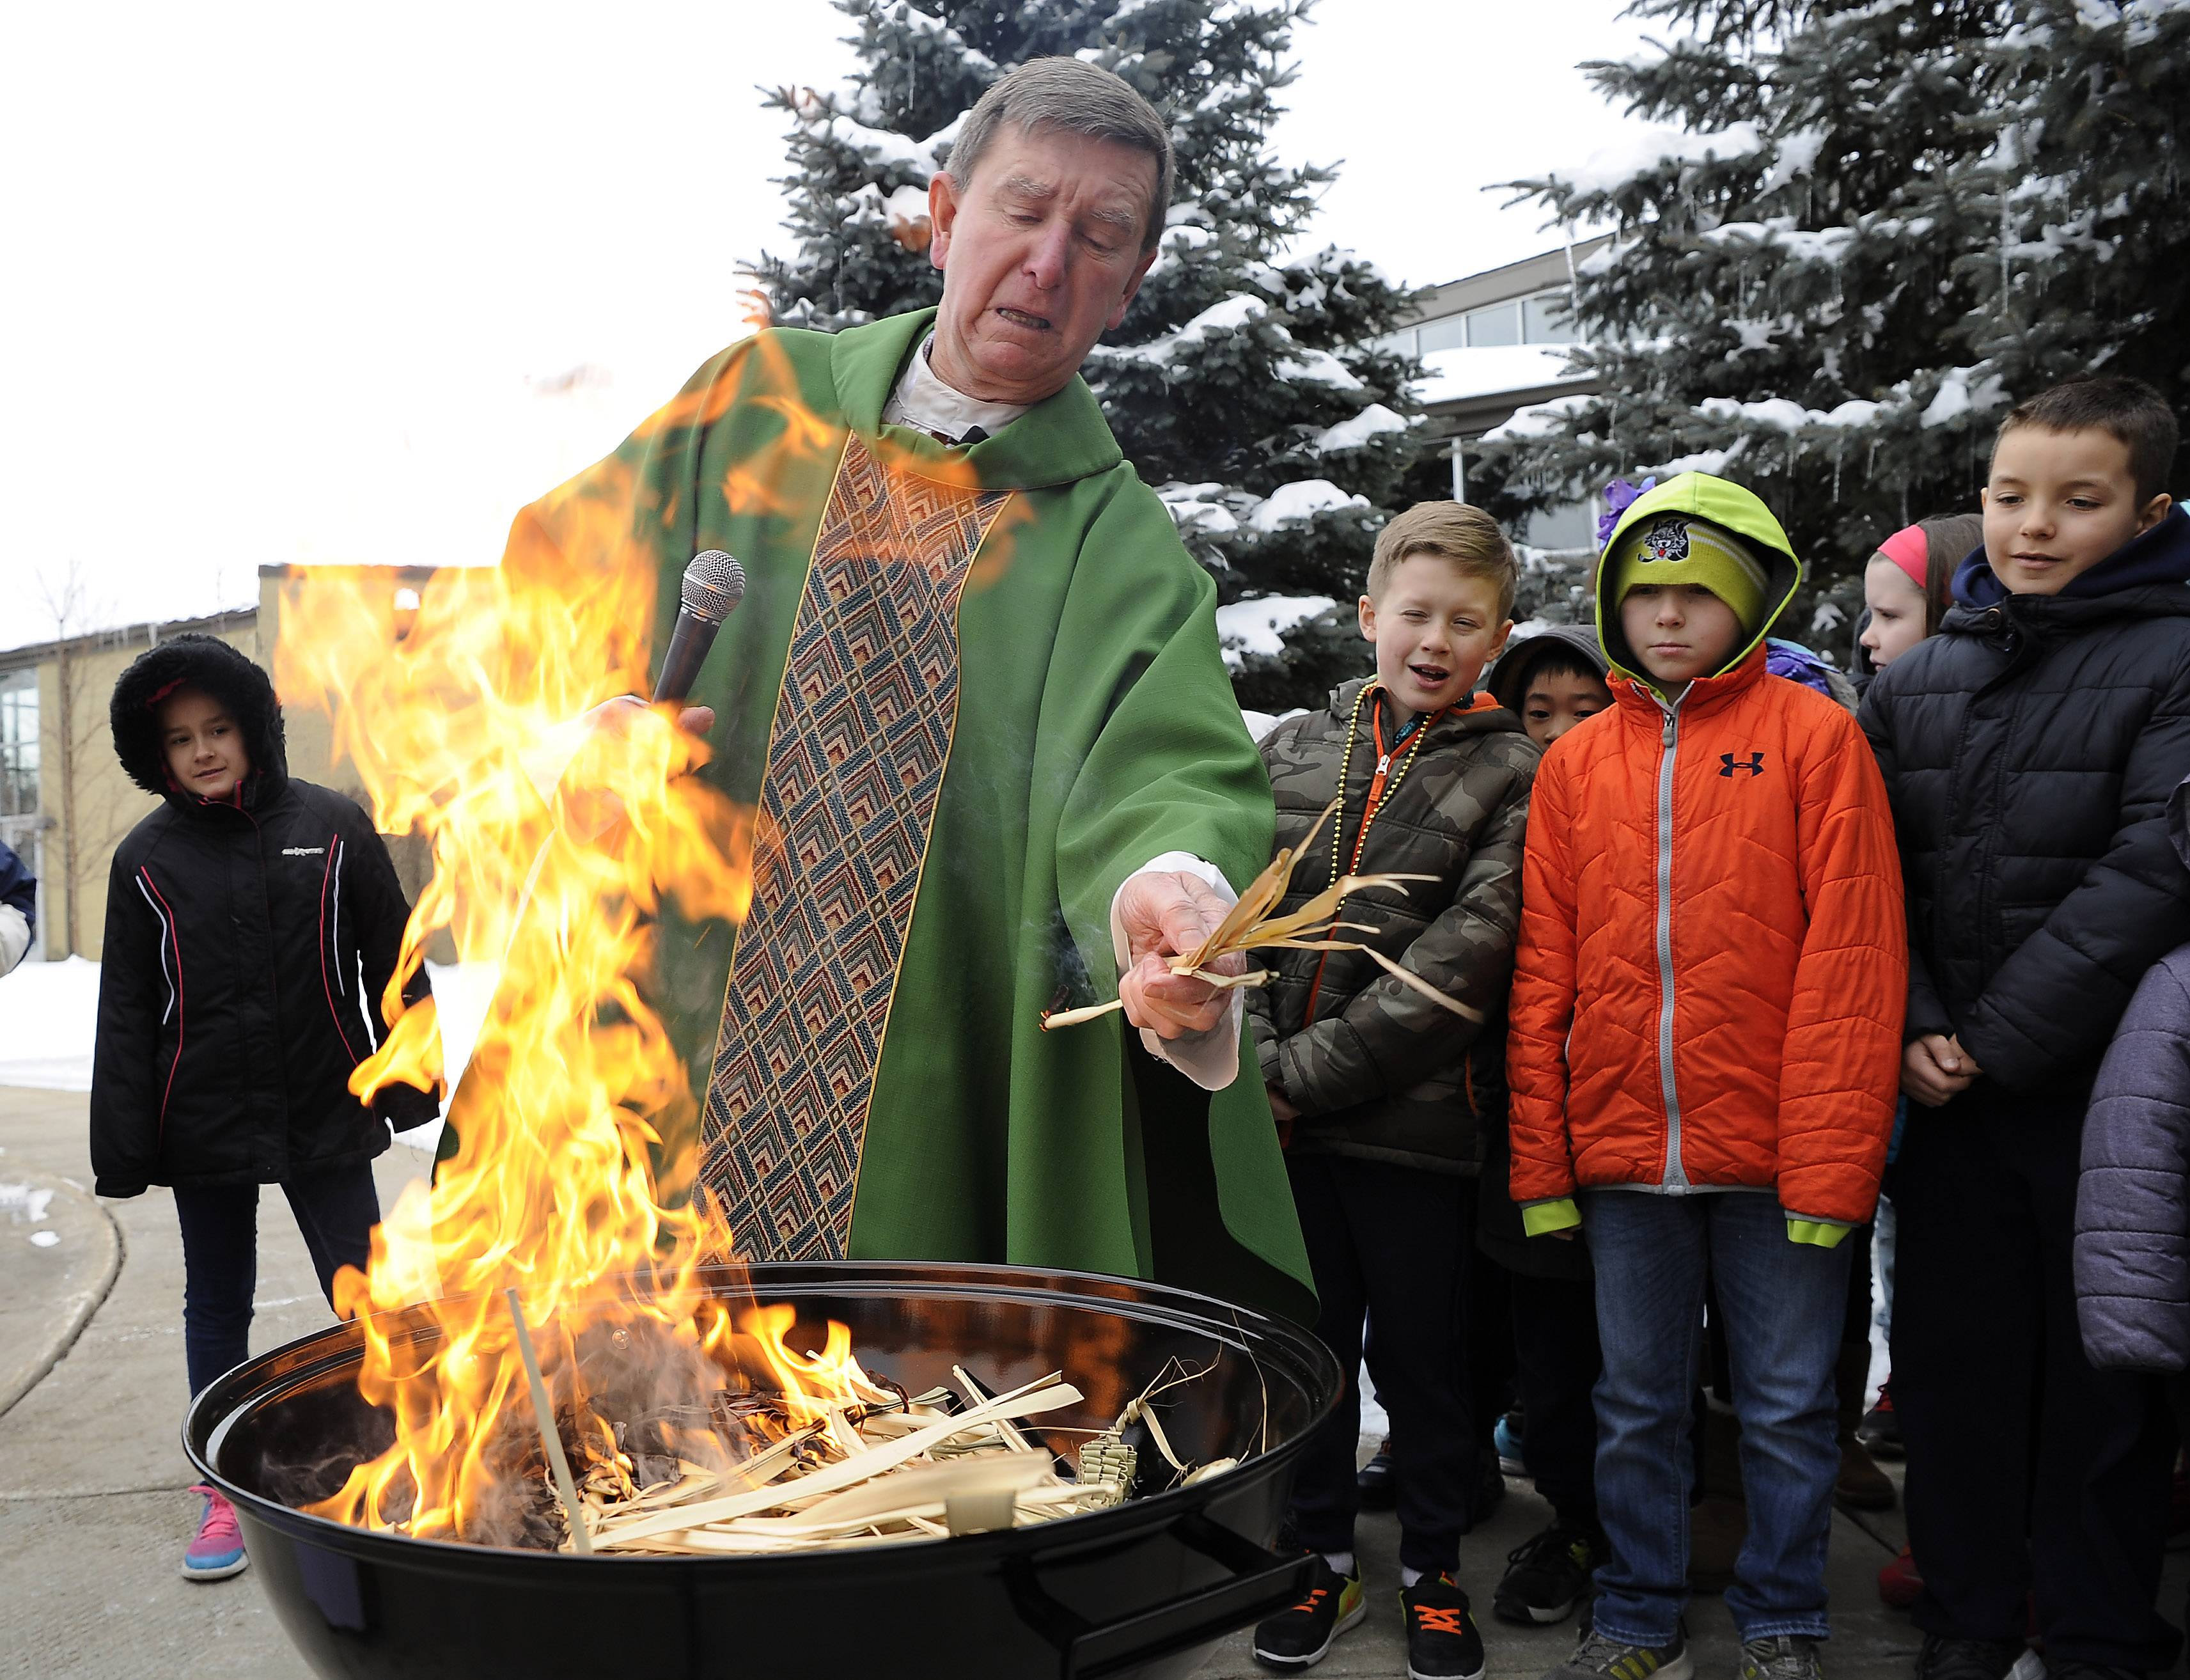 The Rev. Curtis Lambert, pastor of St. Alphonsus Liguori Church in Prospect Heights, tosses palm leaves into a fire Tuesday as students from the parish school look on. The palms were burned to make ashes for Ash Wednesday services.